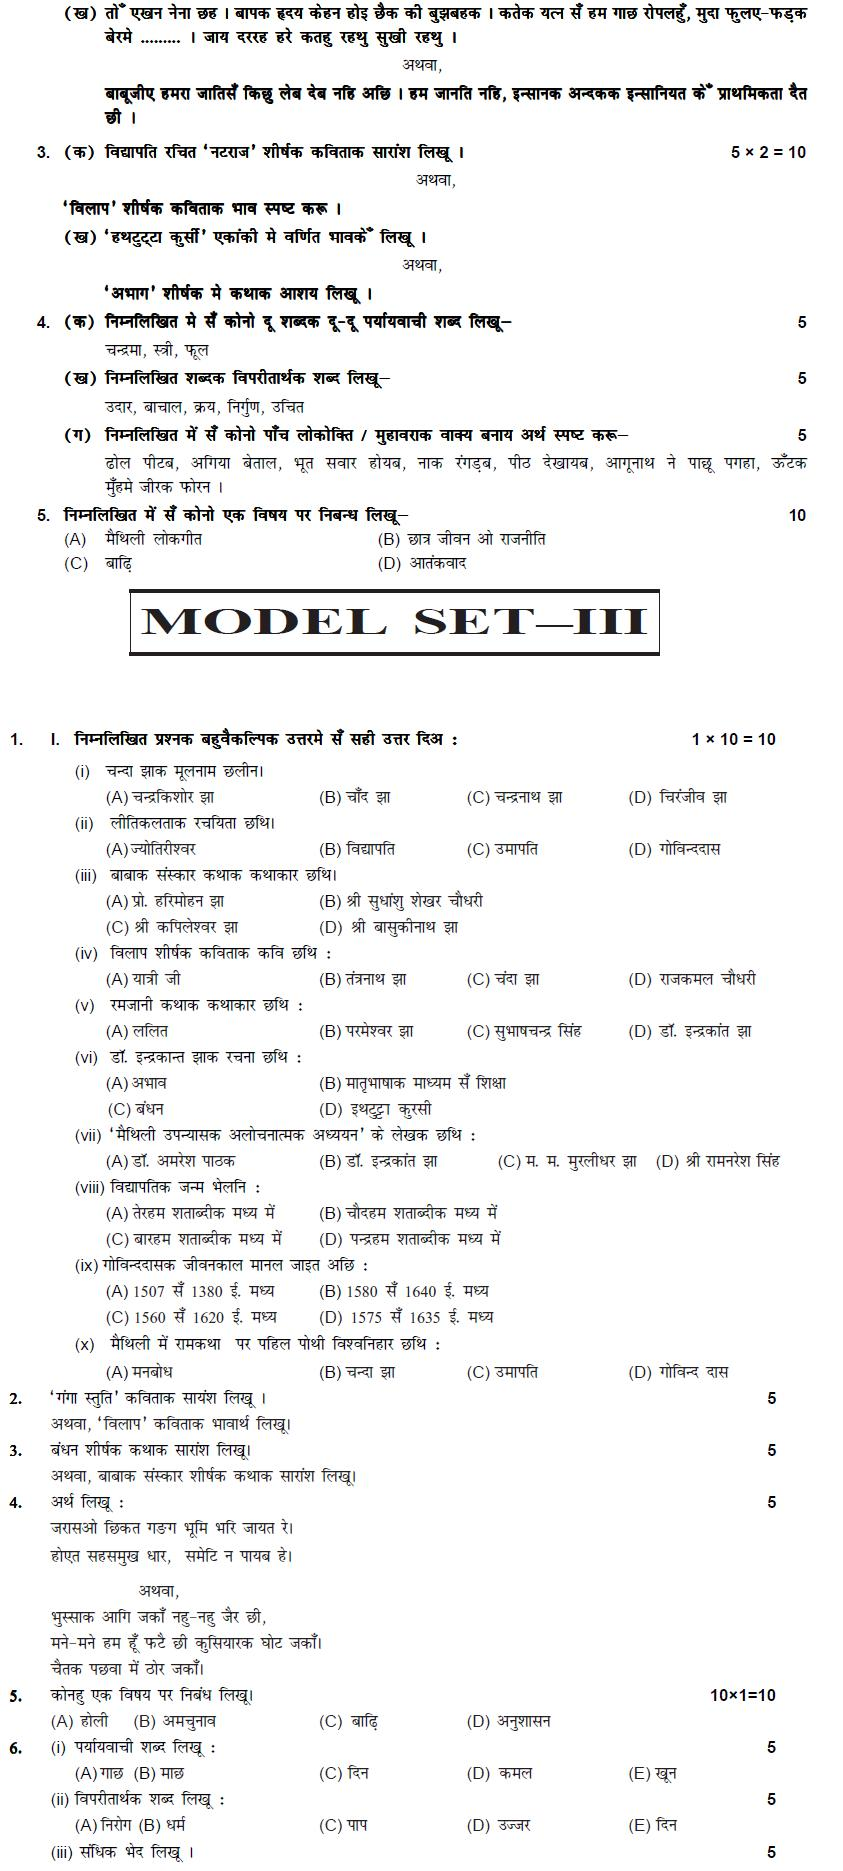 Bihar Board Class XI Humanities Model Question Papers - Maithilli